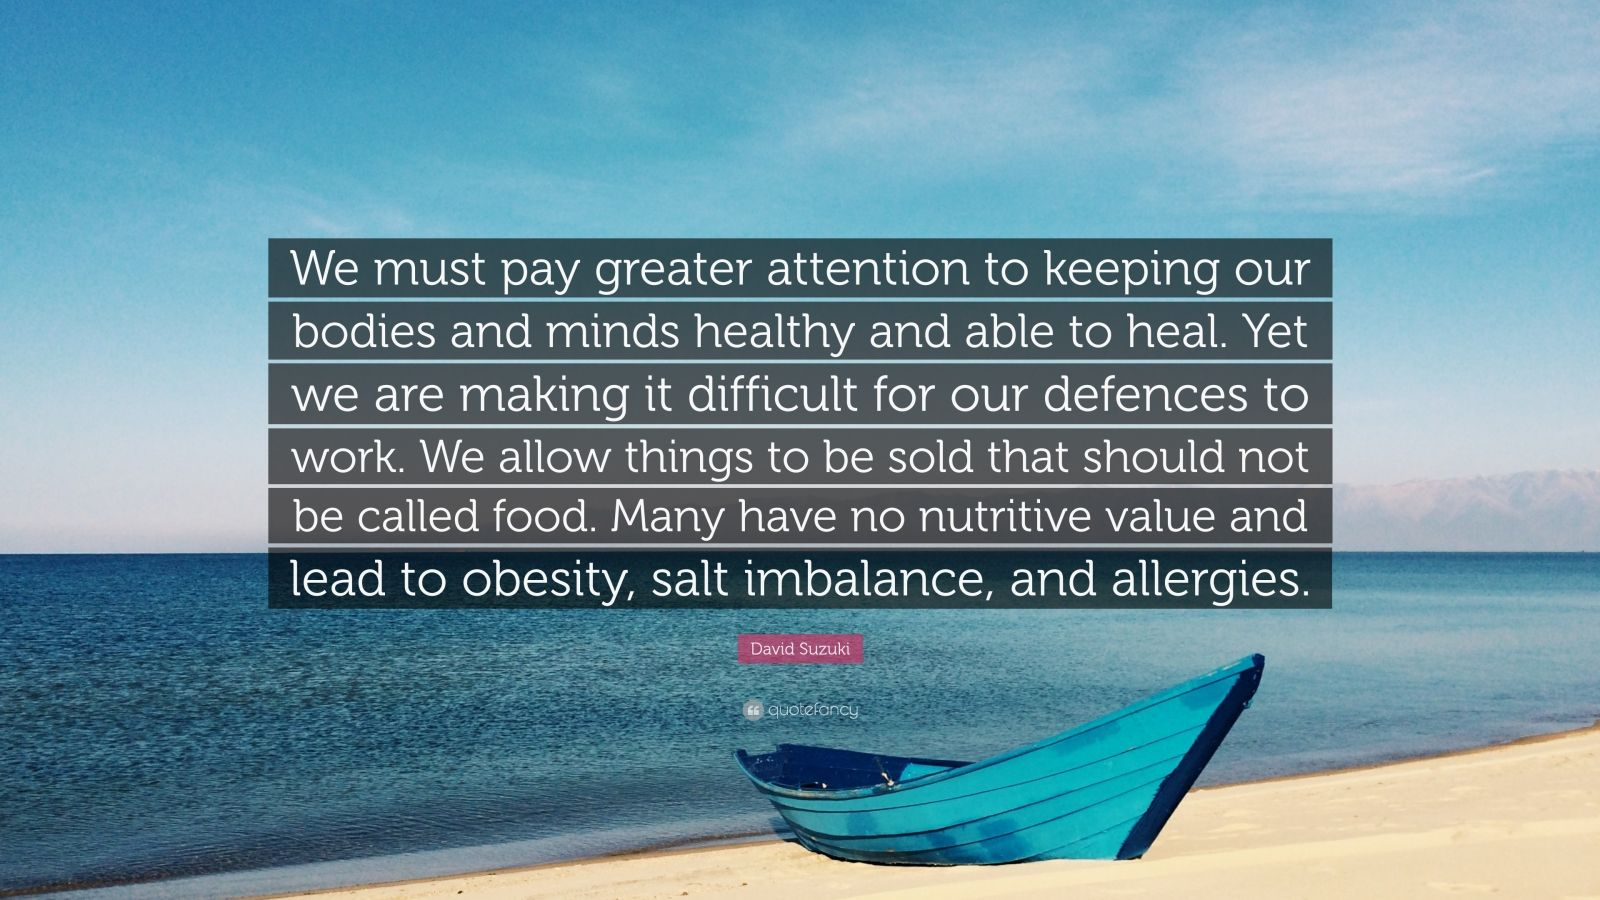 """David Suzuki Quote: """"We must pay greater attention to keeping our bodies and minds healthy and able to heal. Yet we are making it difficult for our defences to work. We allow things to be sold that should not be called food. Many have no nutritive value and lead to obesity, salt imbalance, and allergies."""""""